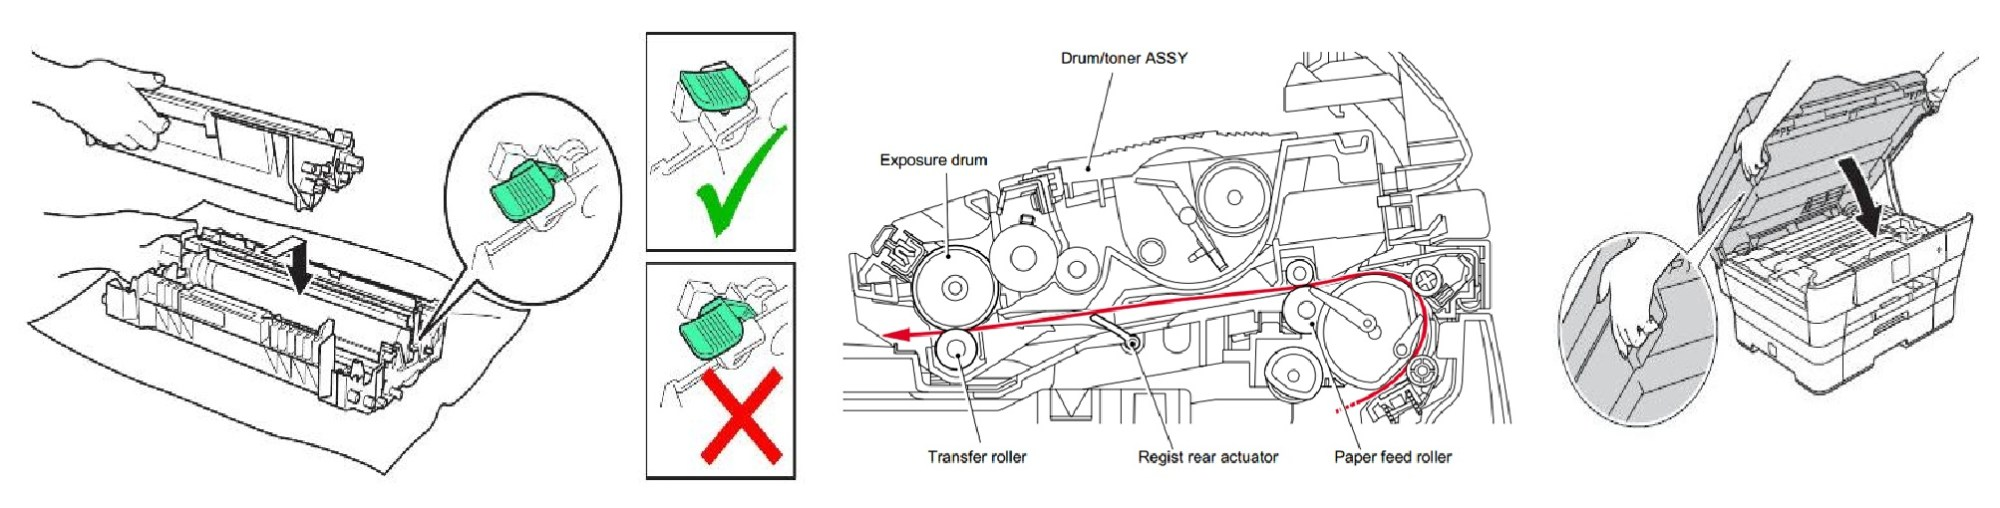 hight resolution of brother printer how to reset low toner message after replace laser toner cartridge